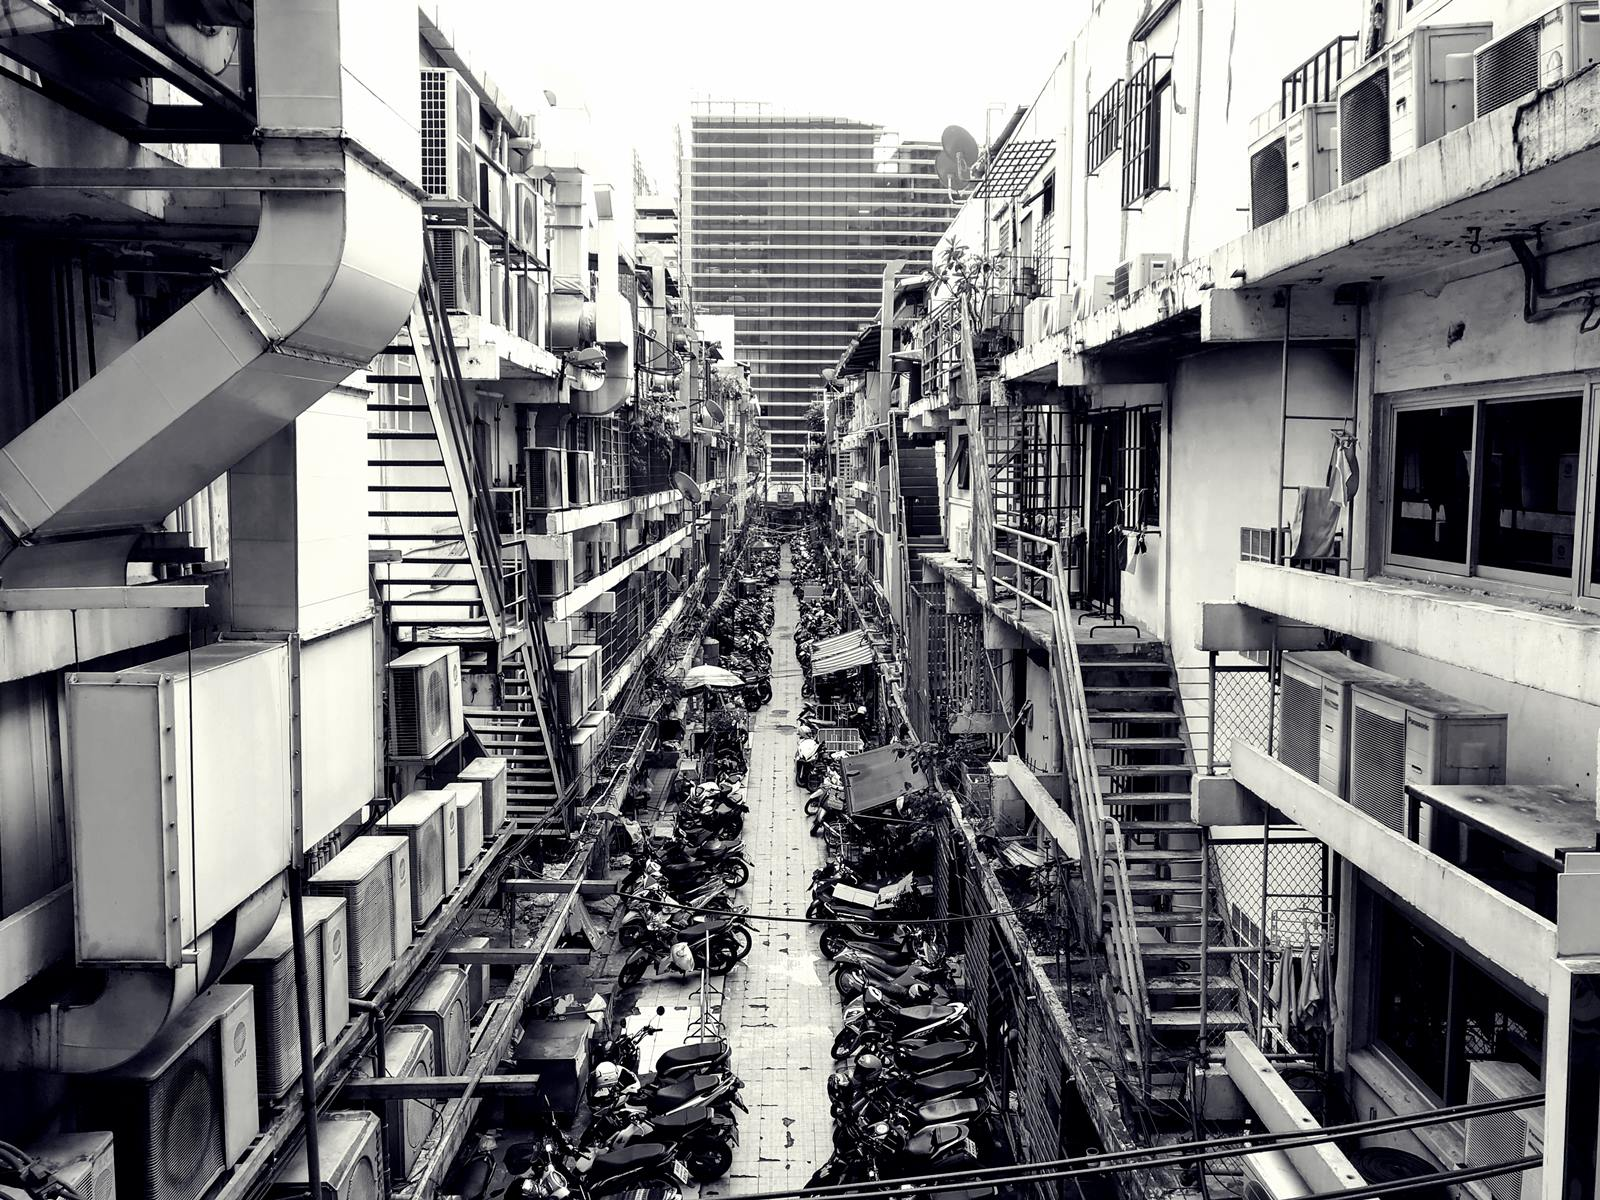 Crowded downtown area in Bangkok